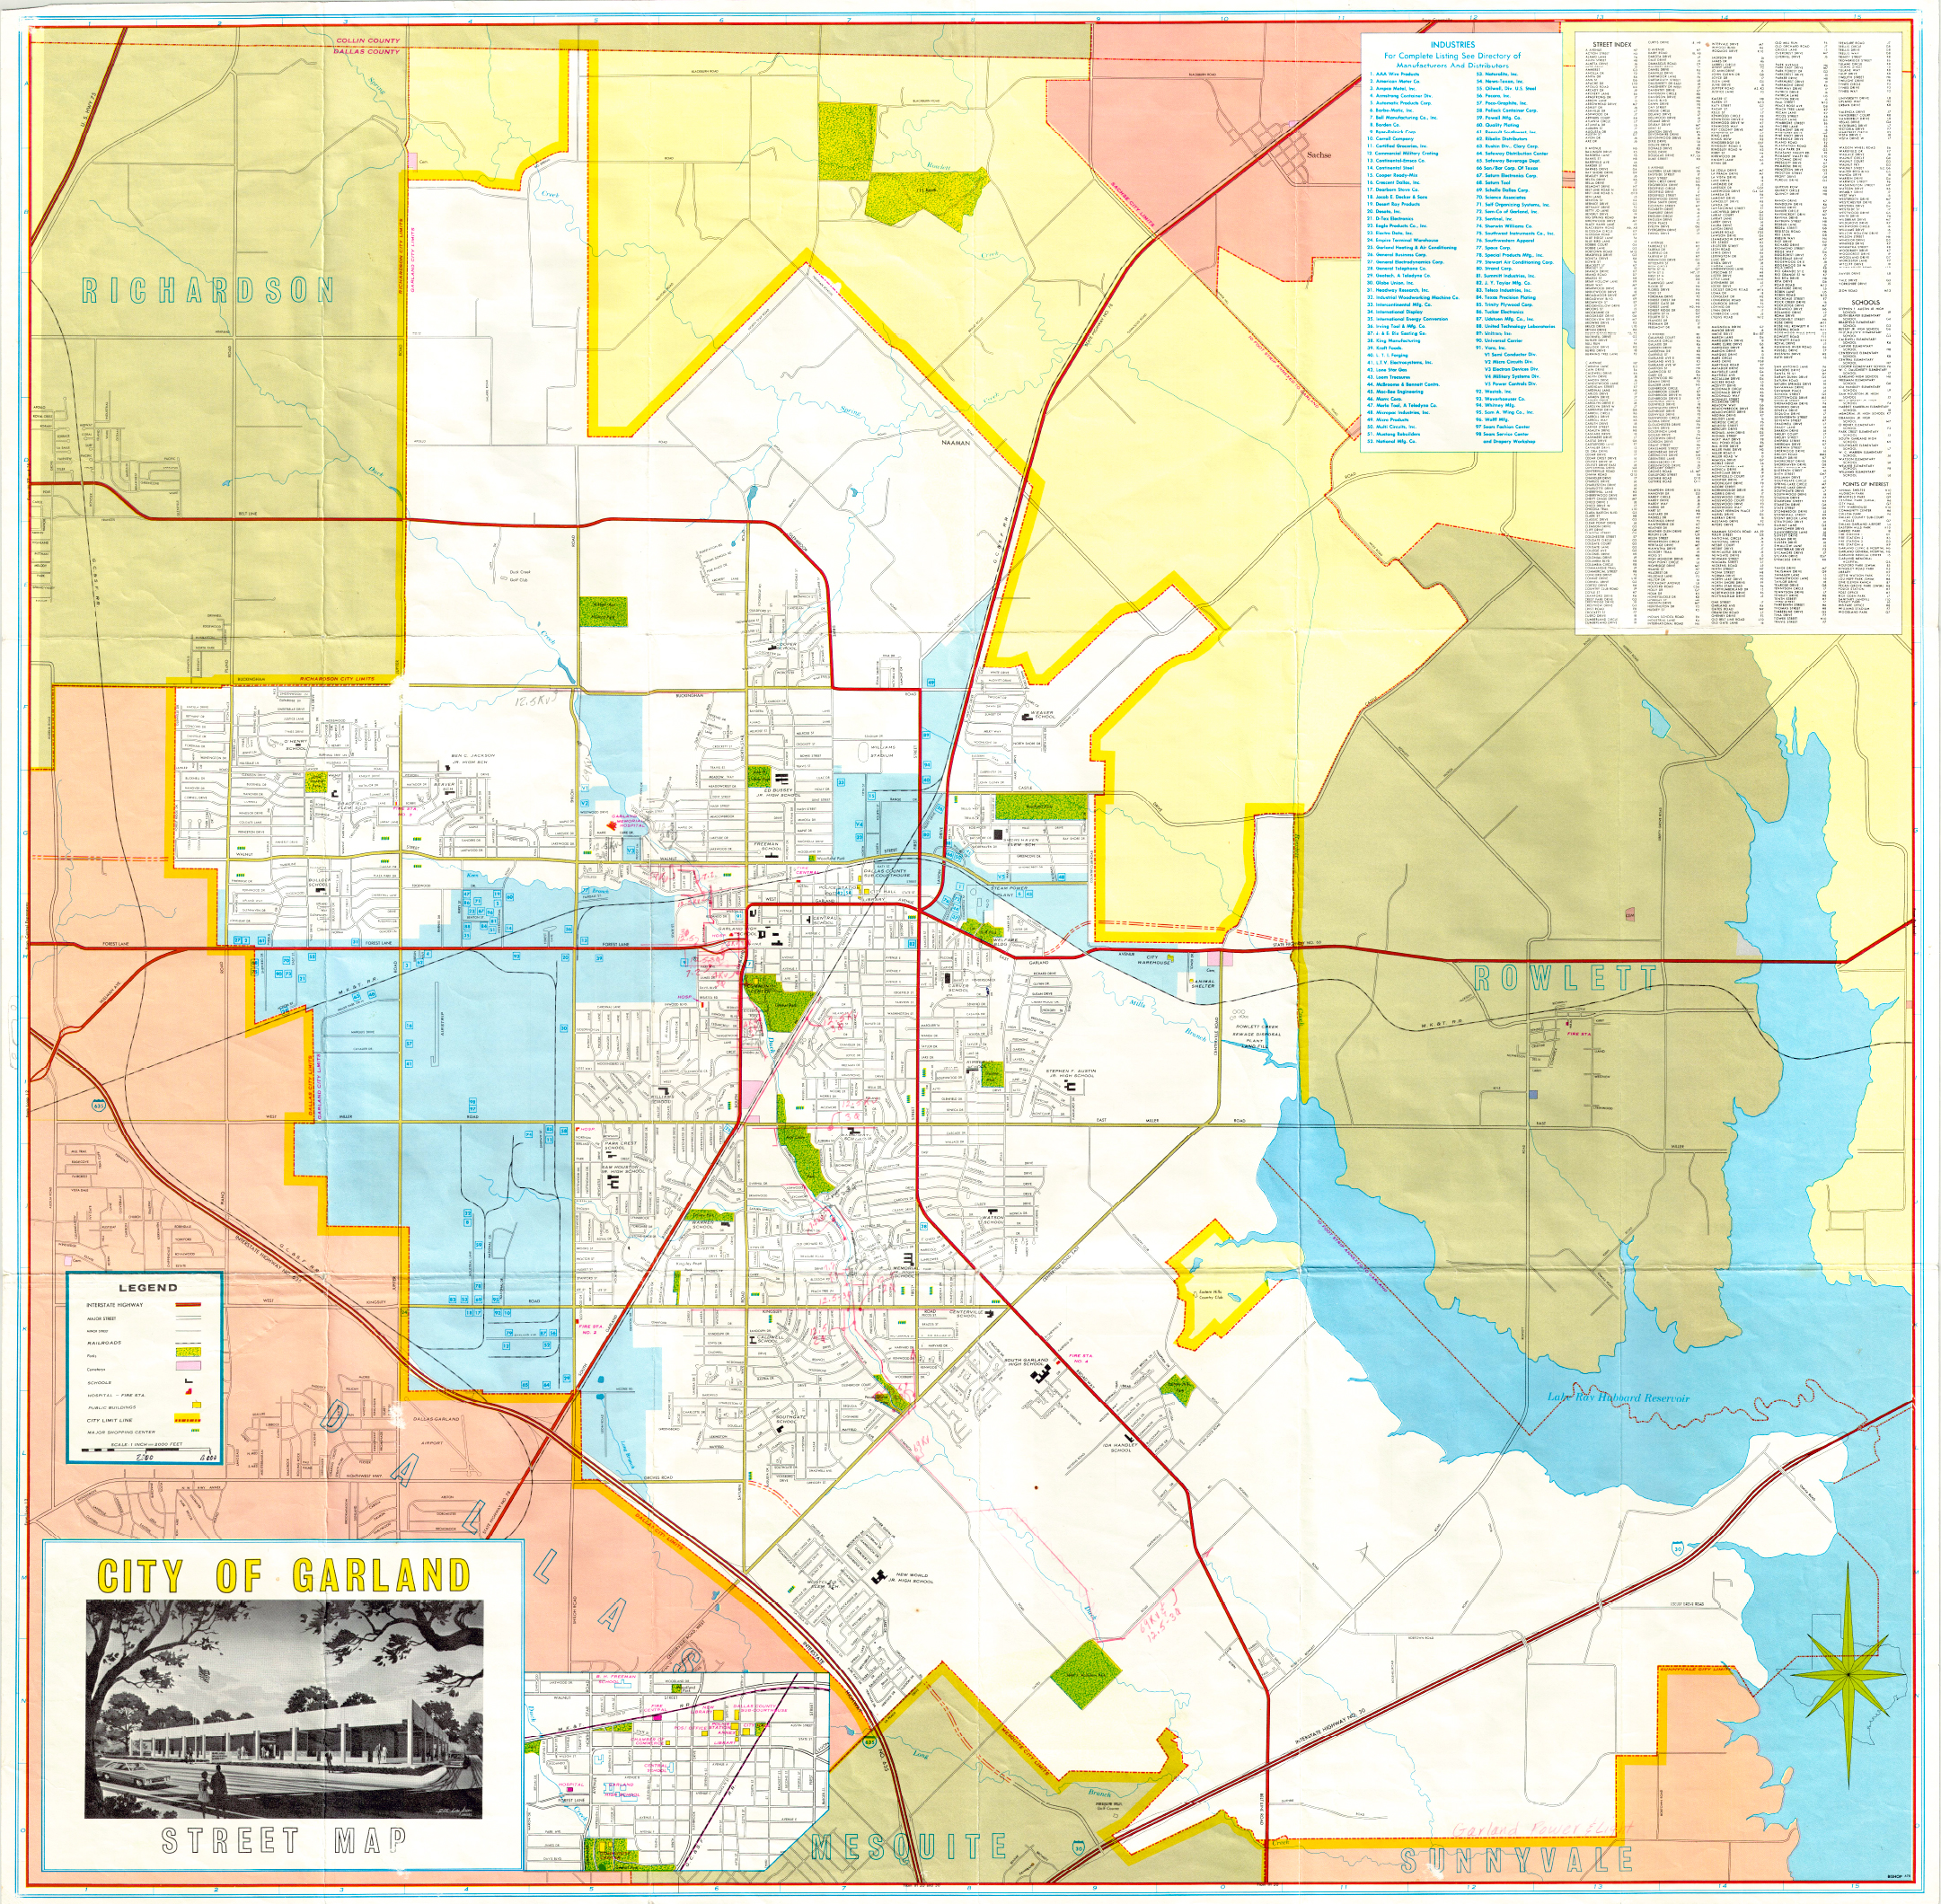 Garland Landmark Society City Map Garland Texas 1968 1970